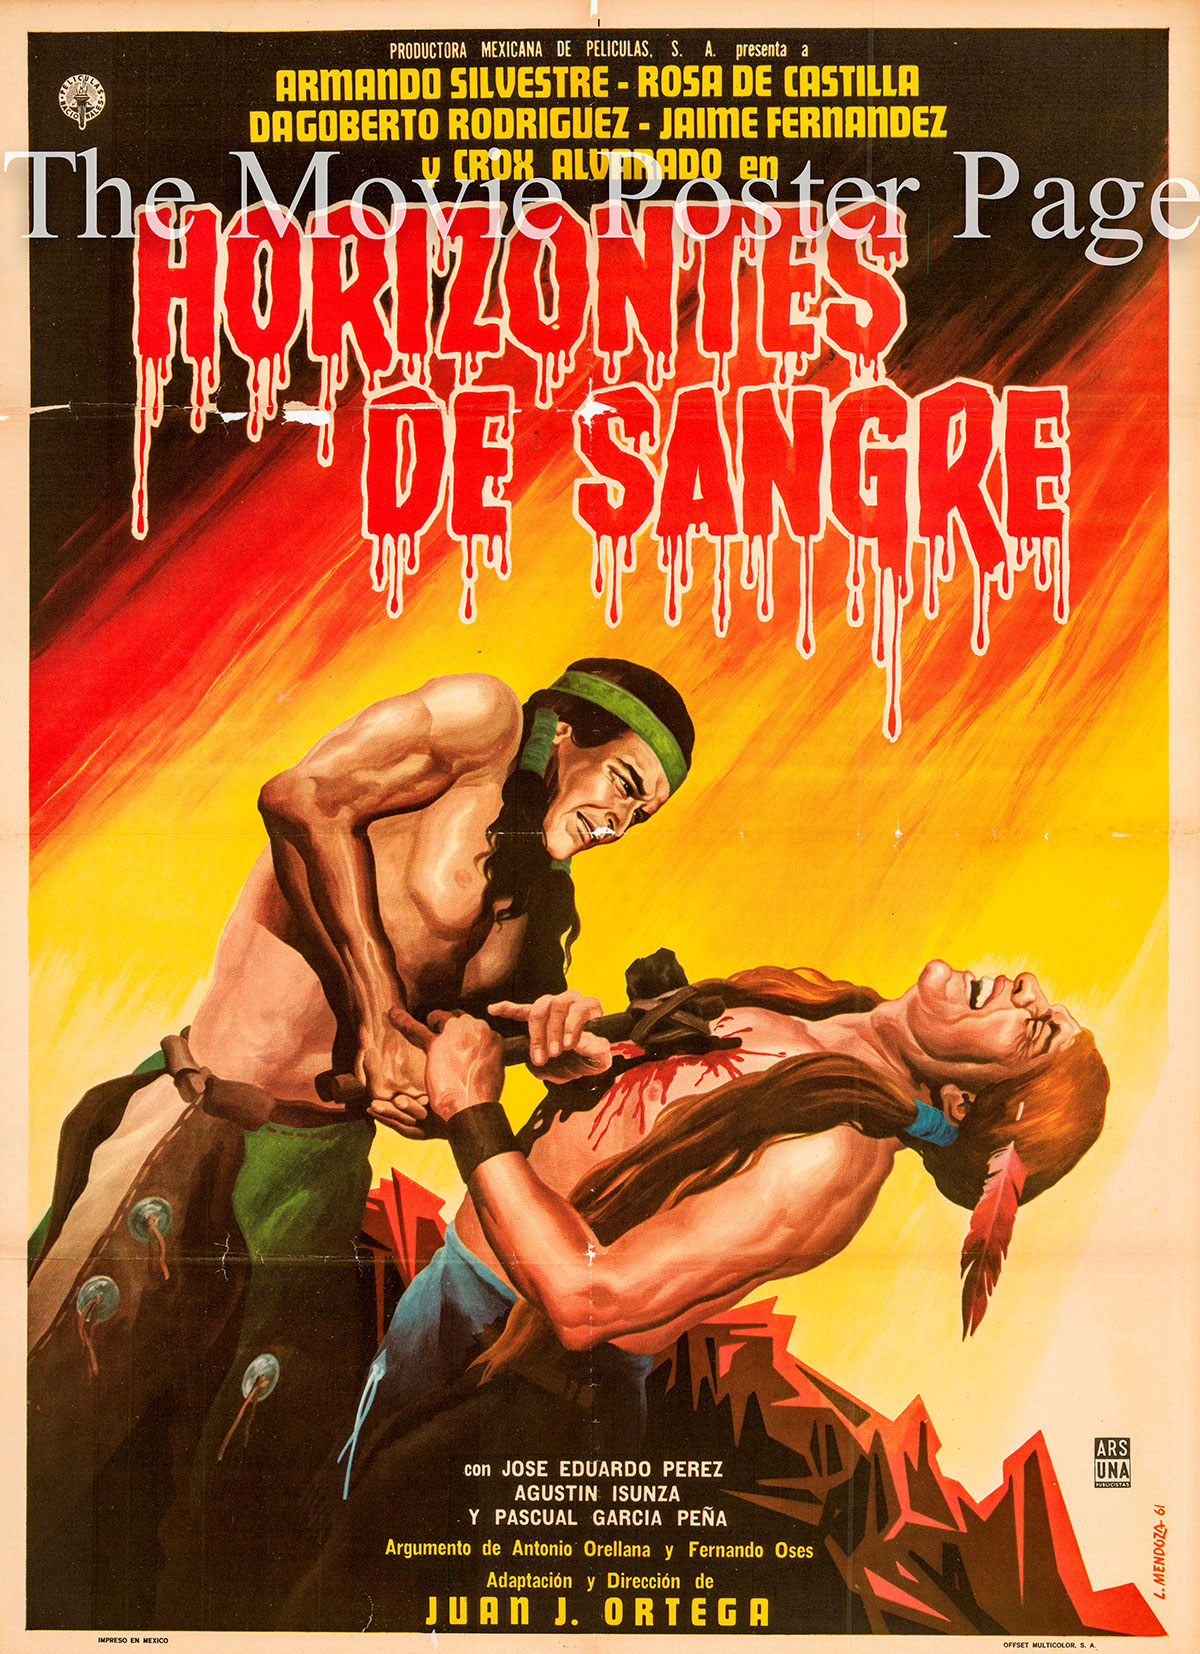 Pictured is a Mexican one-sheet poster forthe 1960 Juan Joes Ortega film Horizontes de Sangre starring Armando Silvestre.